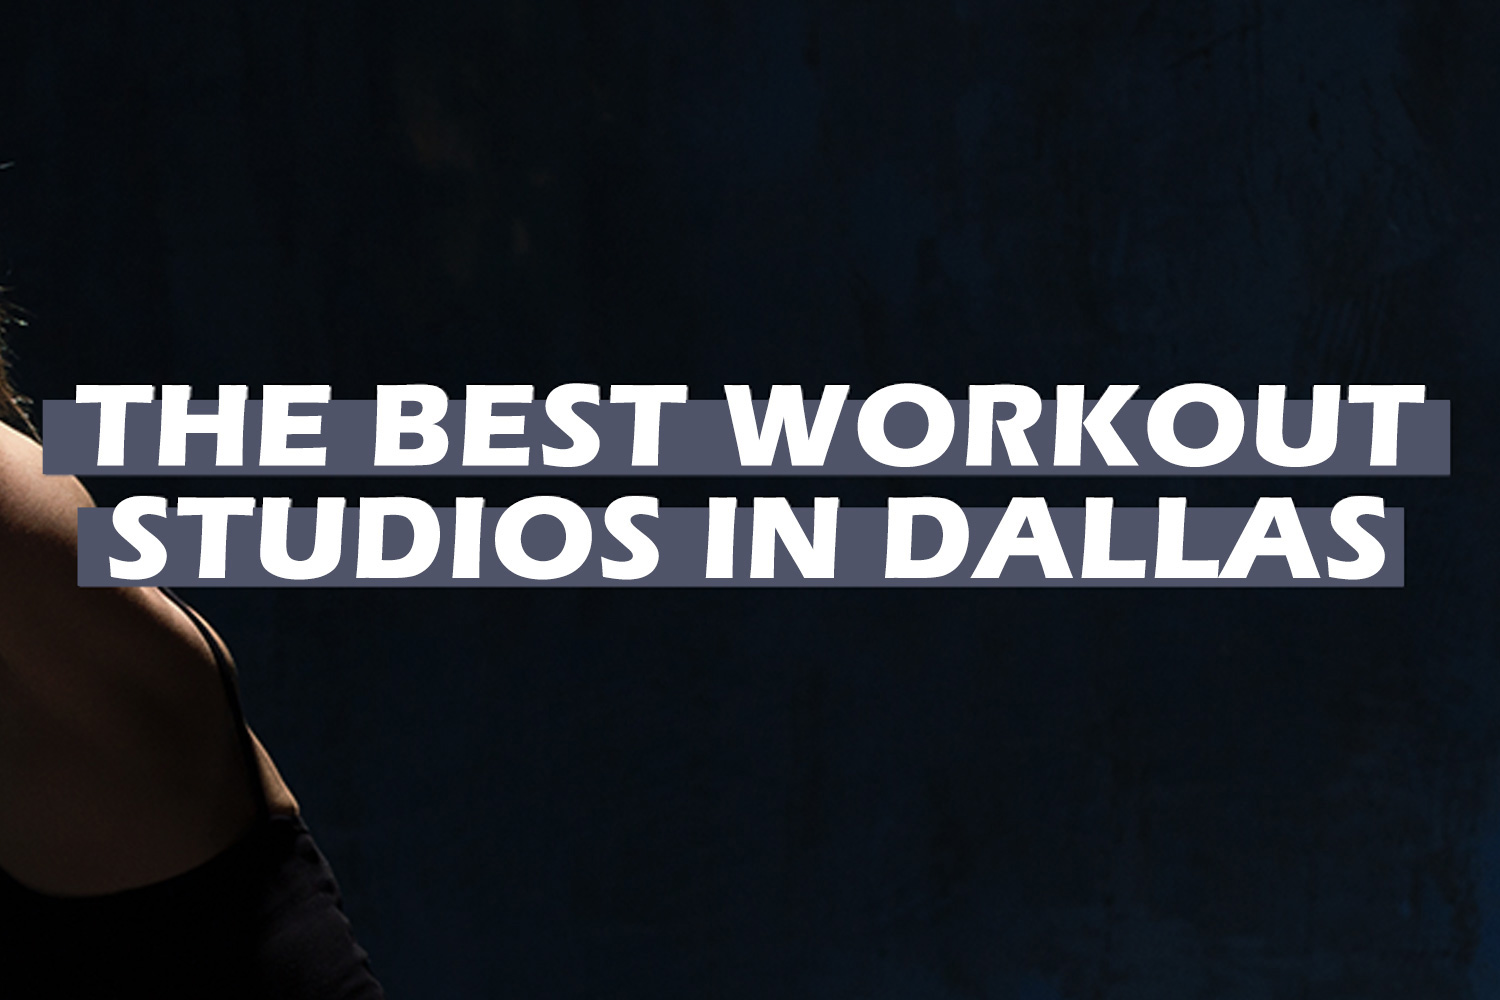 best-workout-studios-dallas-tx.jpg